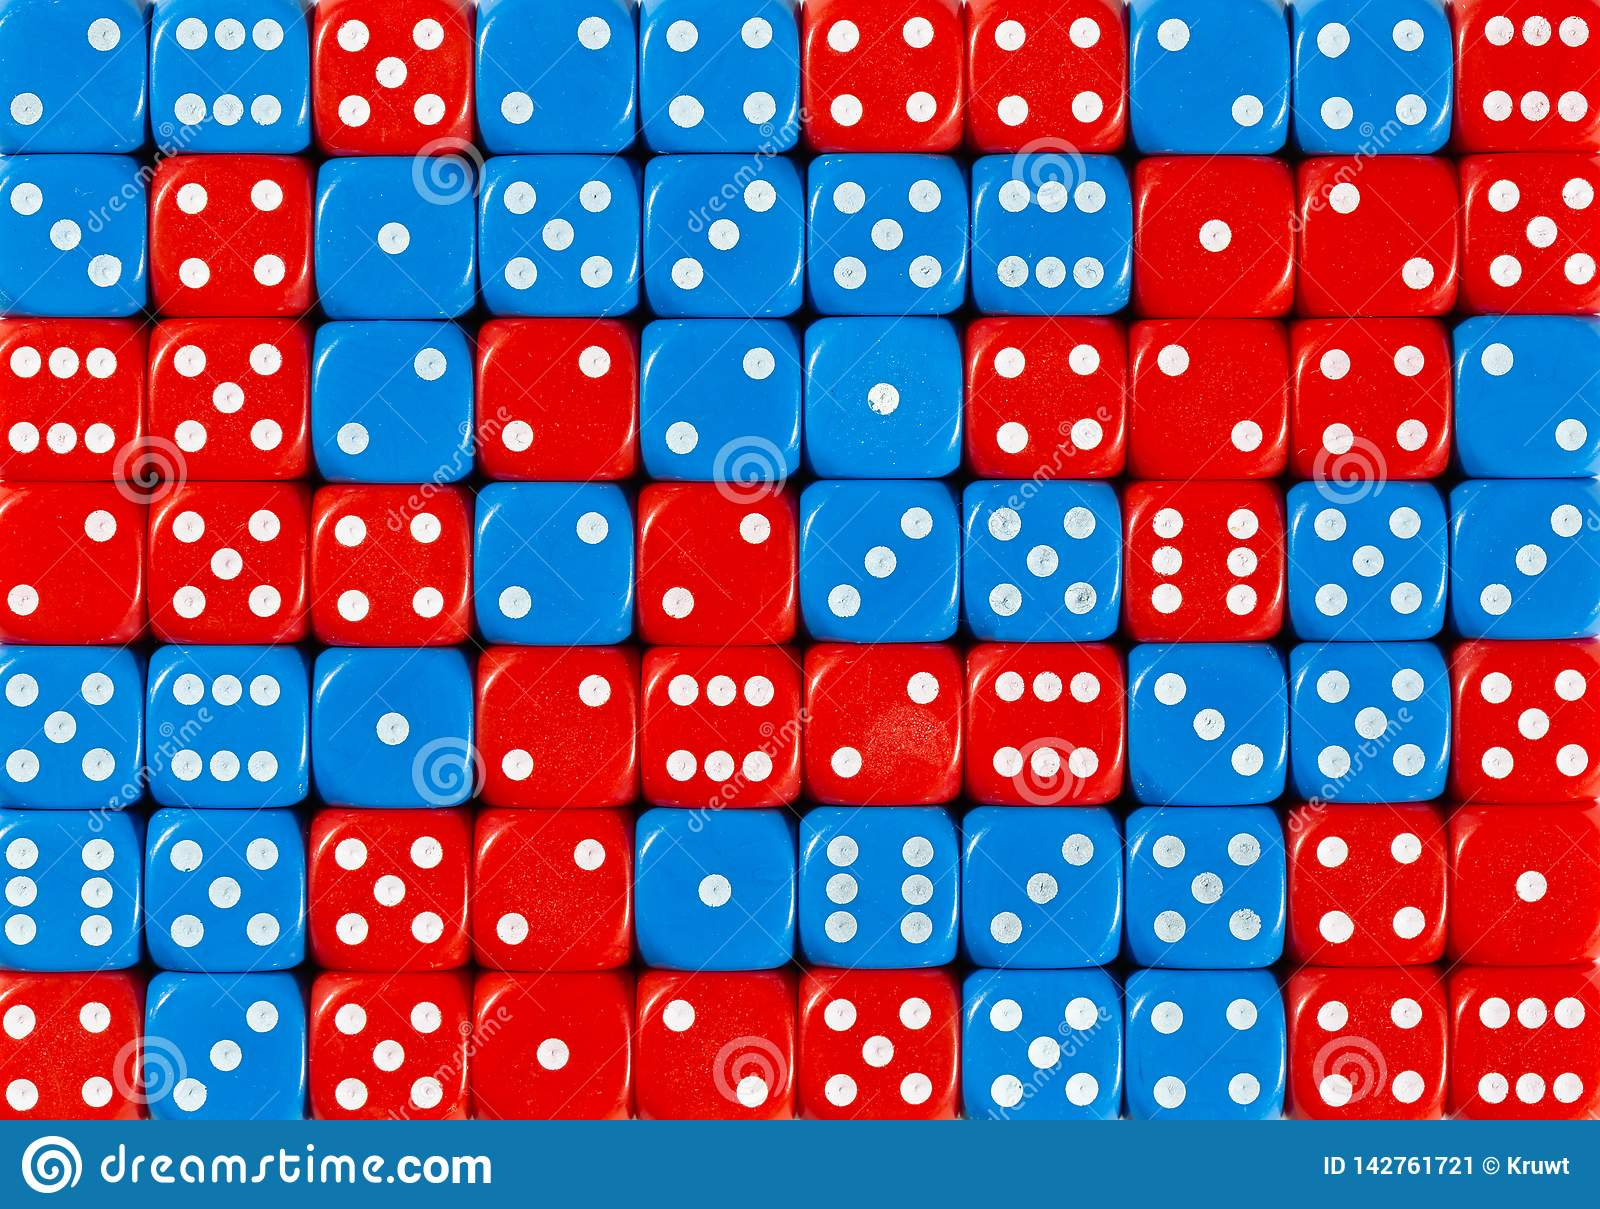 Background of 70 random ordered red and blue dices